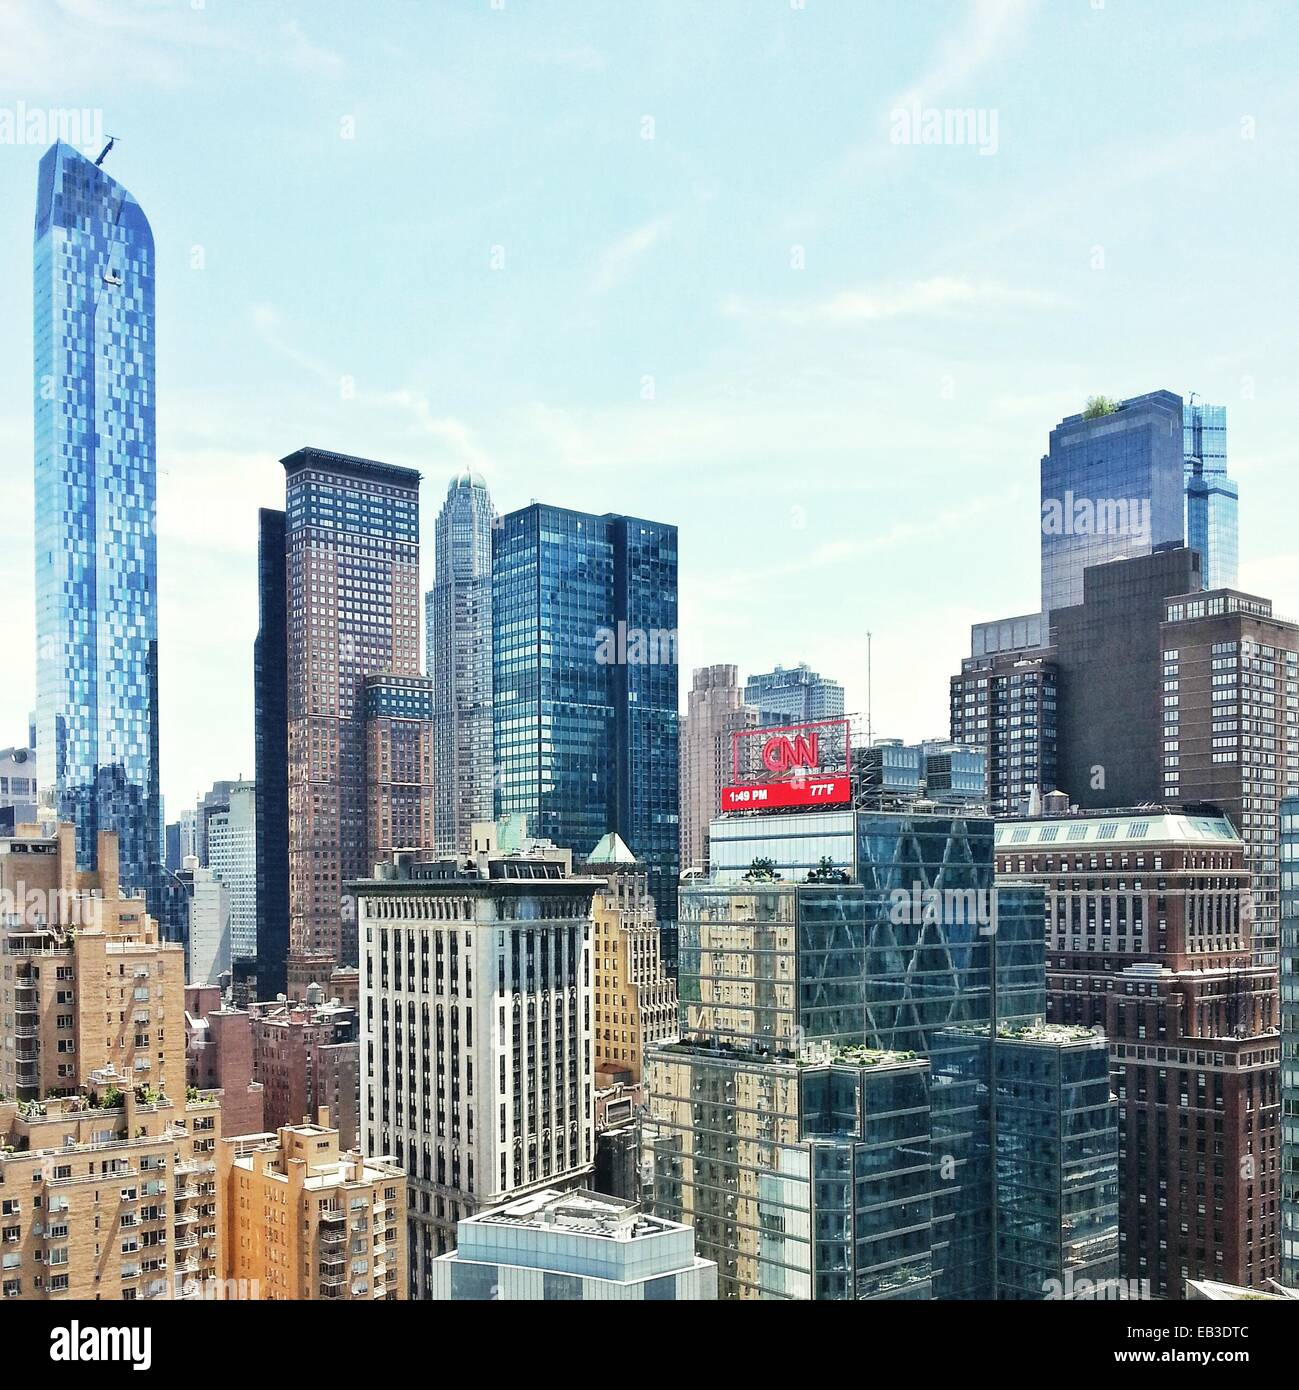 USA, New York State, New York City, View of cityscape - Stock Image